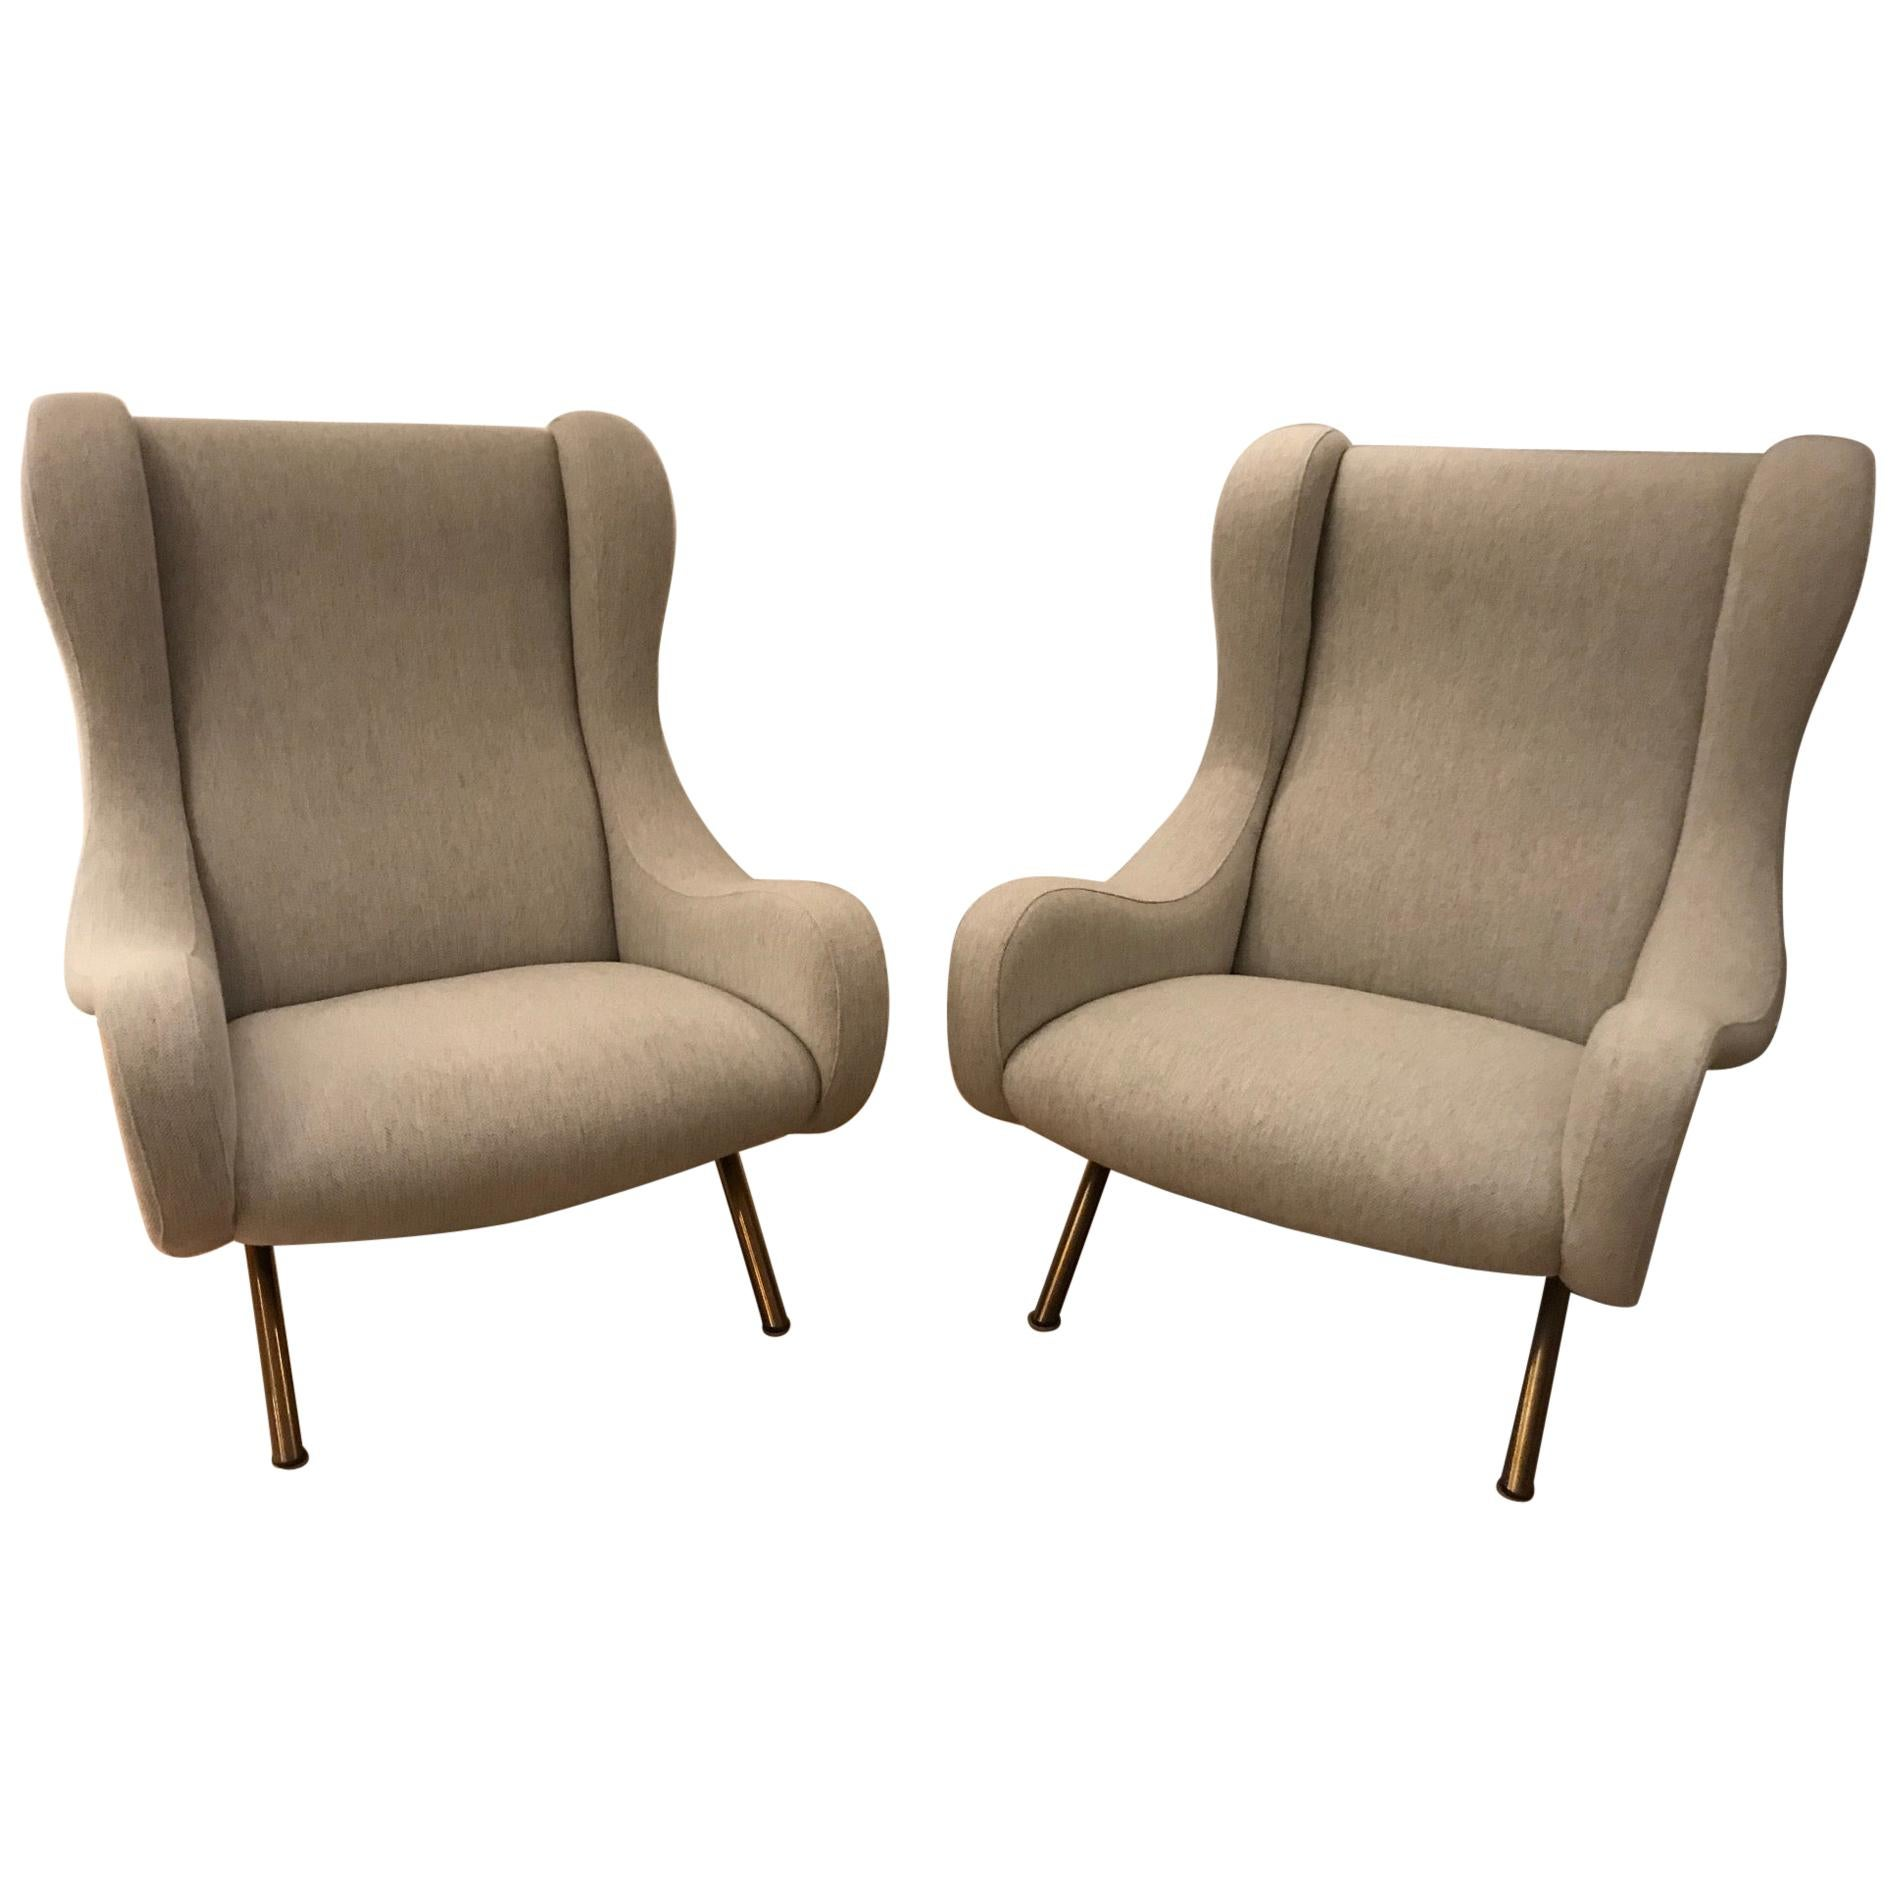 """Pair of """"Senior"""" Armchairs by Marco Zanuso for Arflex, 1950s"""